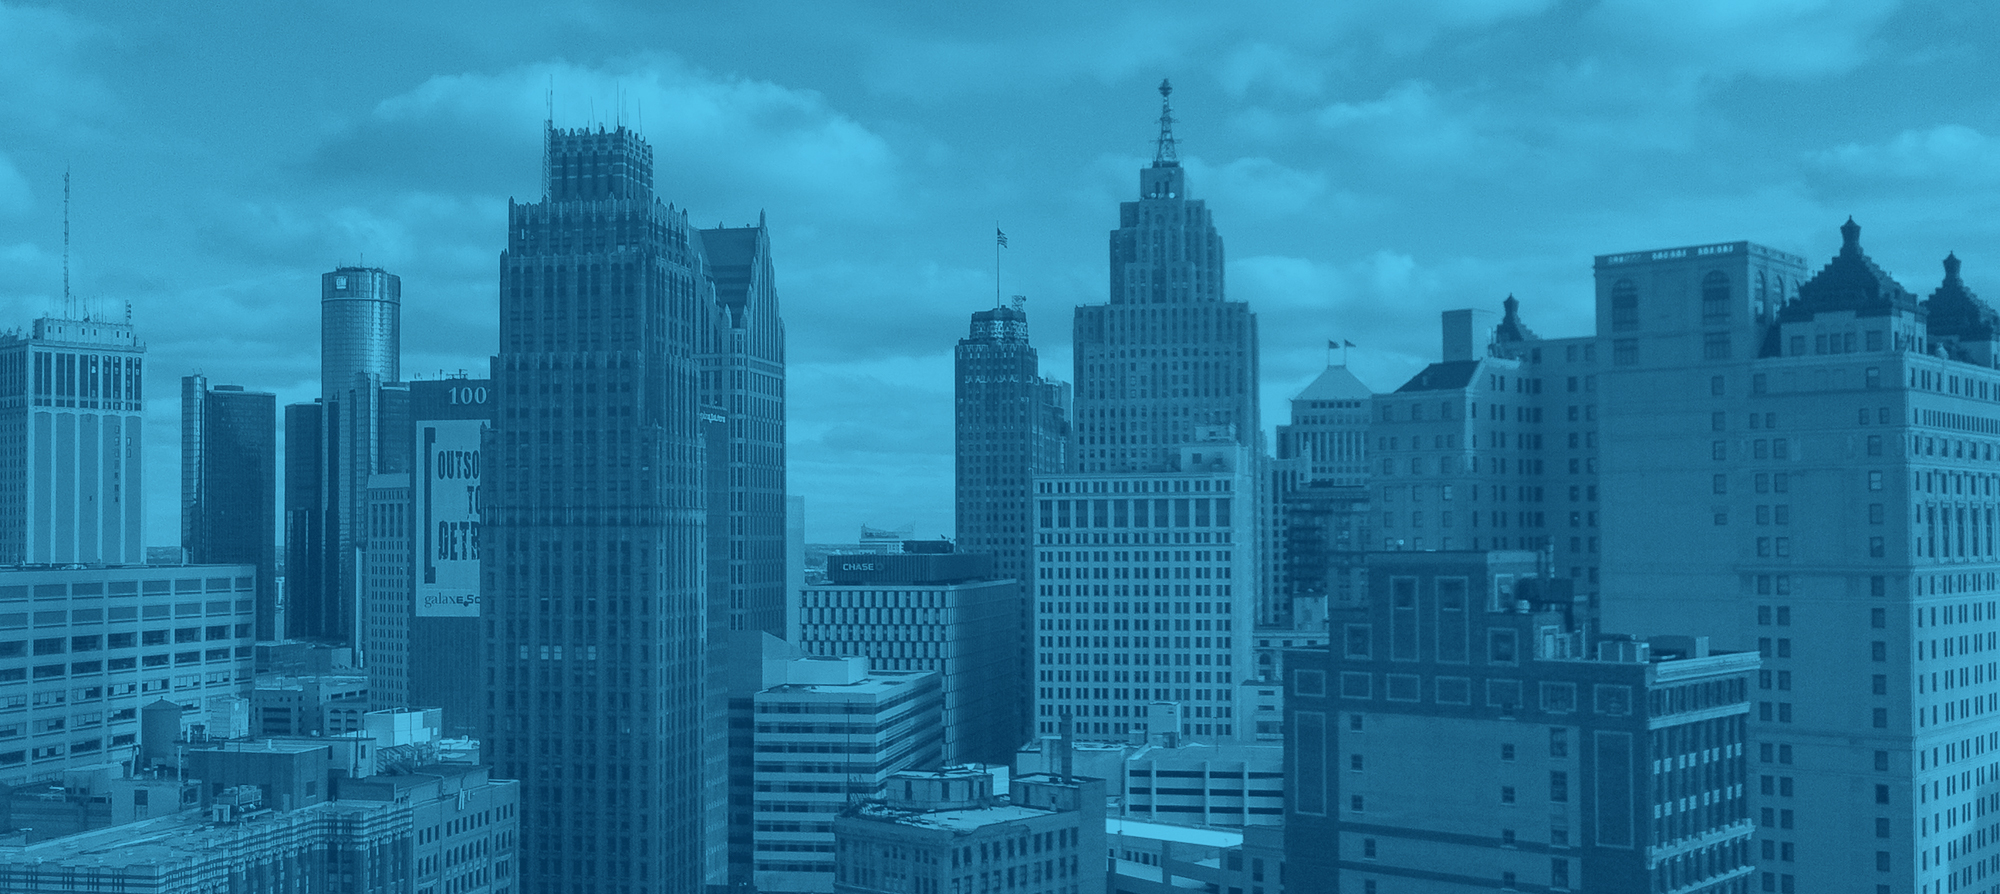 detroit-skyline-blue.jpg